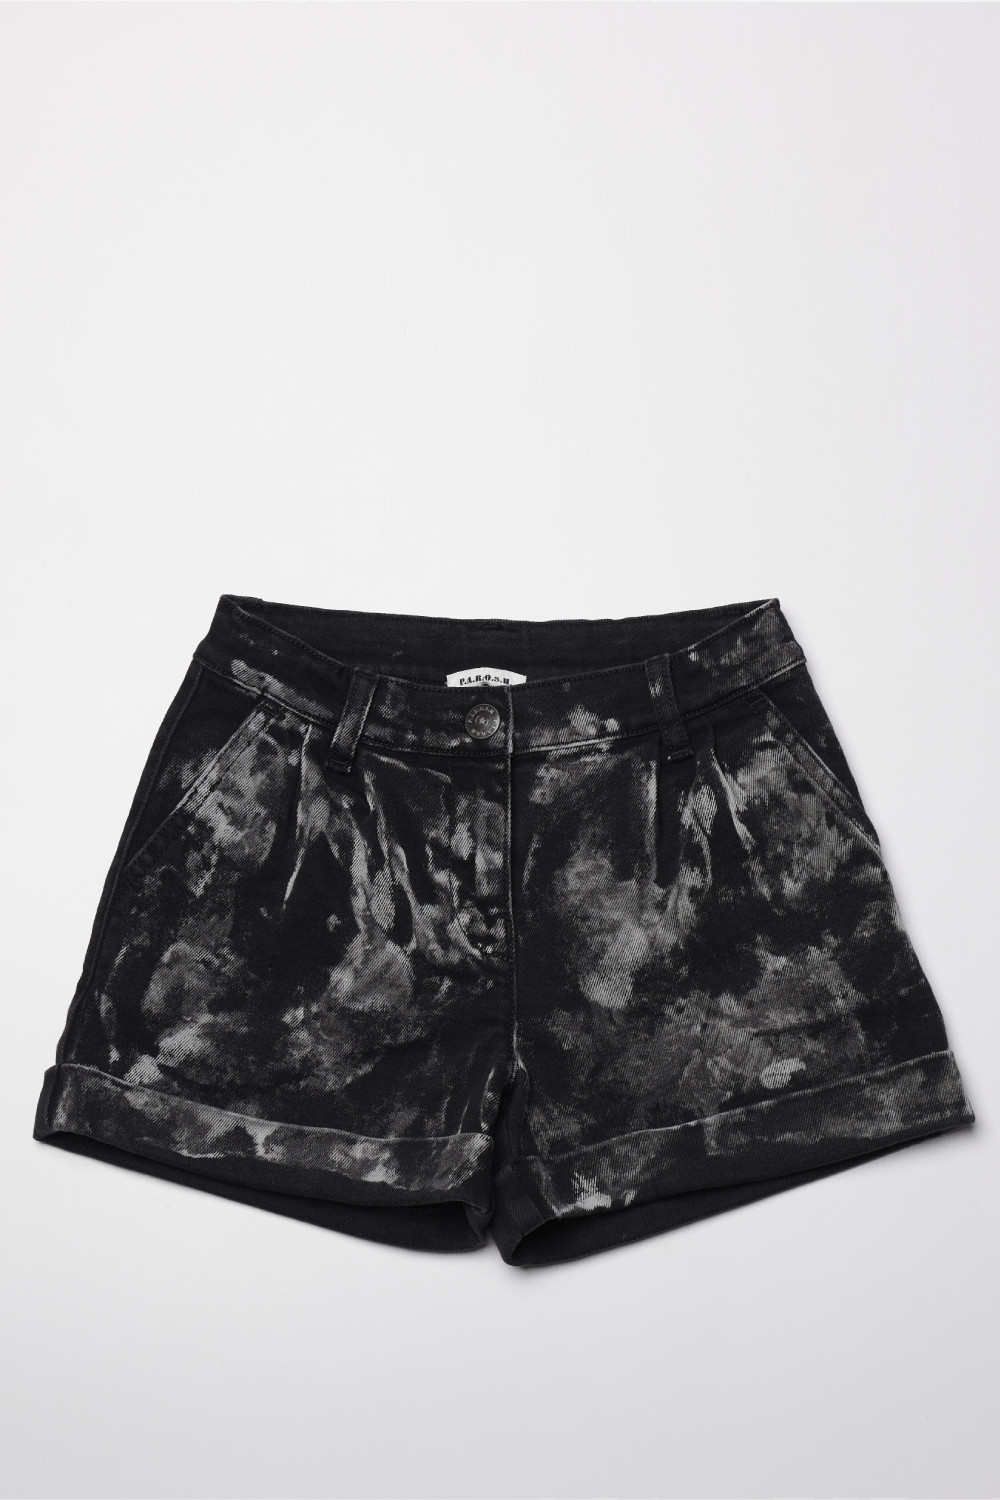 MARBLE TIE-DYE SHORTS - CHIWIK210097